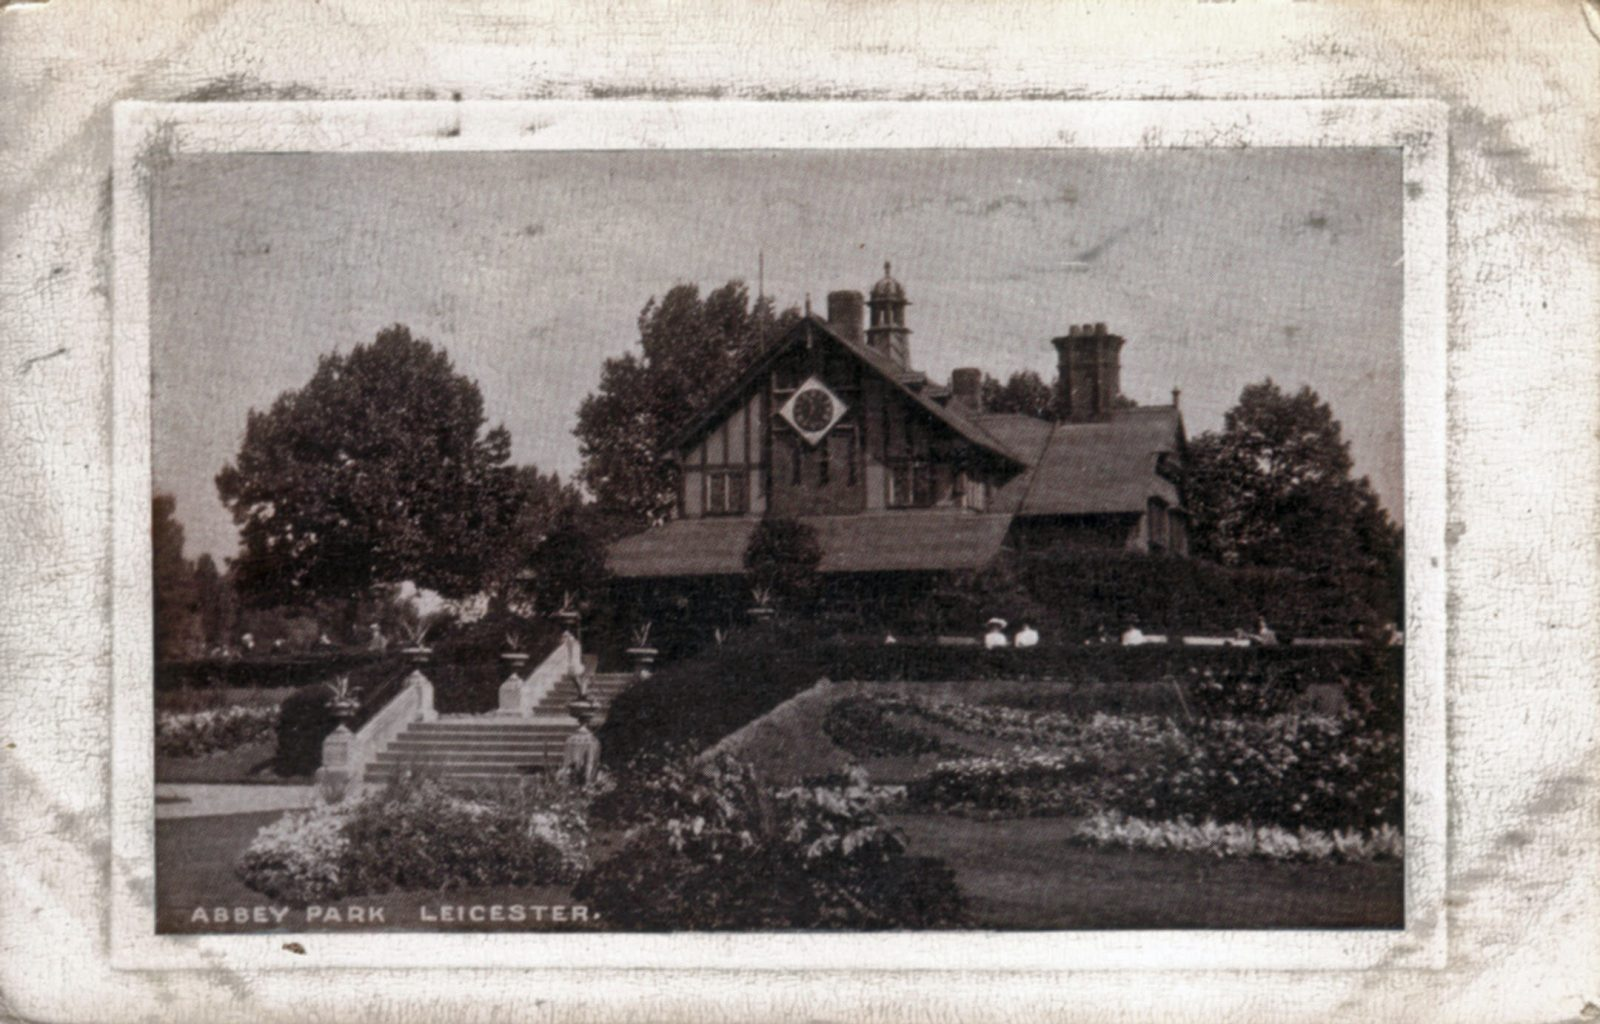 Abbey Park, Leicester. Undated: The Pavilion and carpet bedding. Similar view to 1051 but later - trees larger. (File:1052)